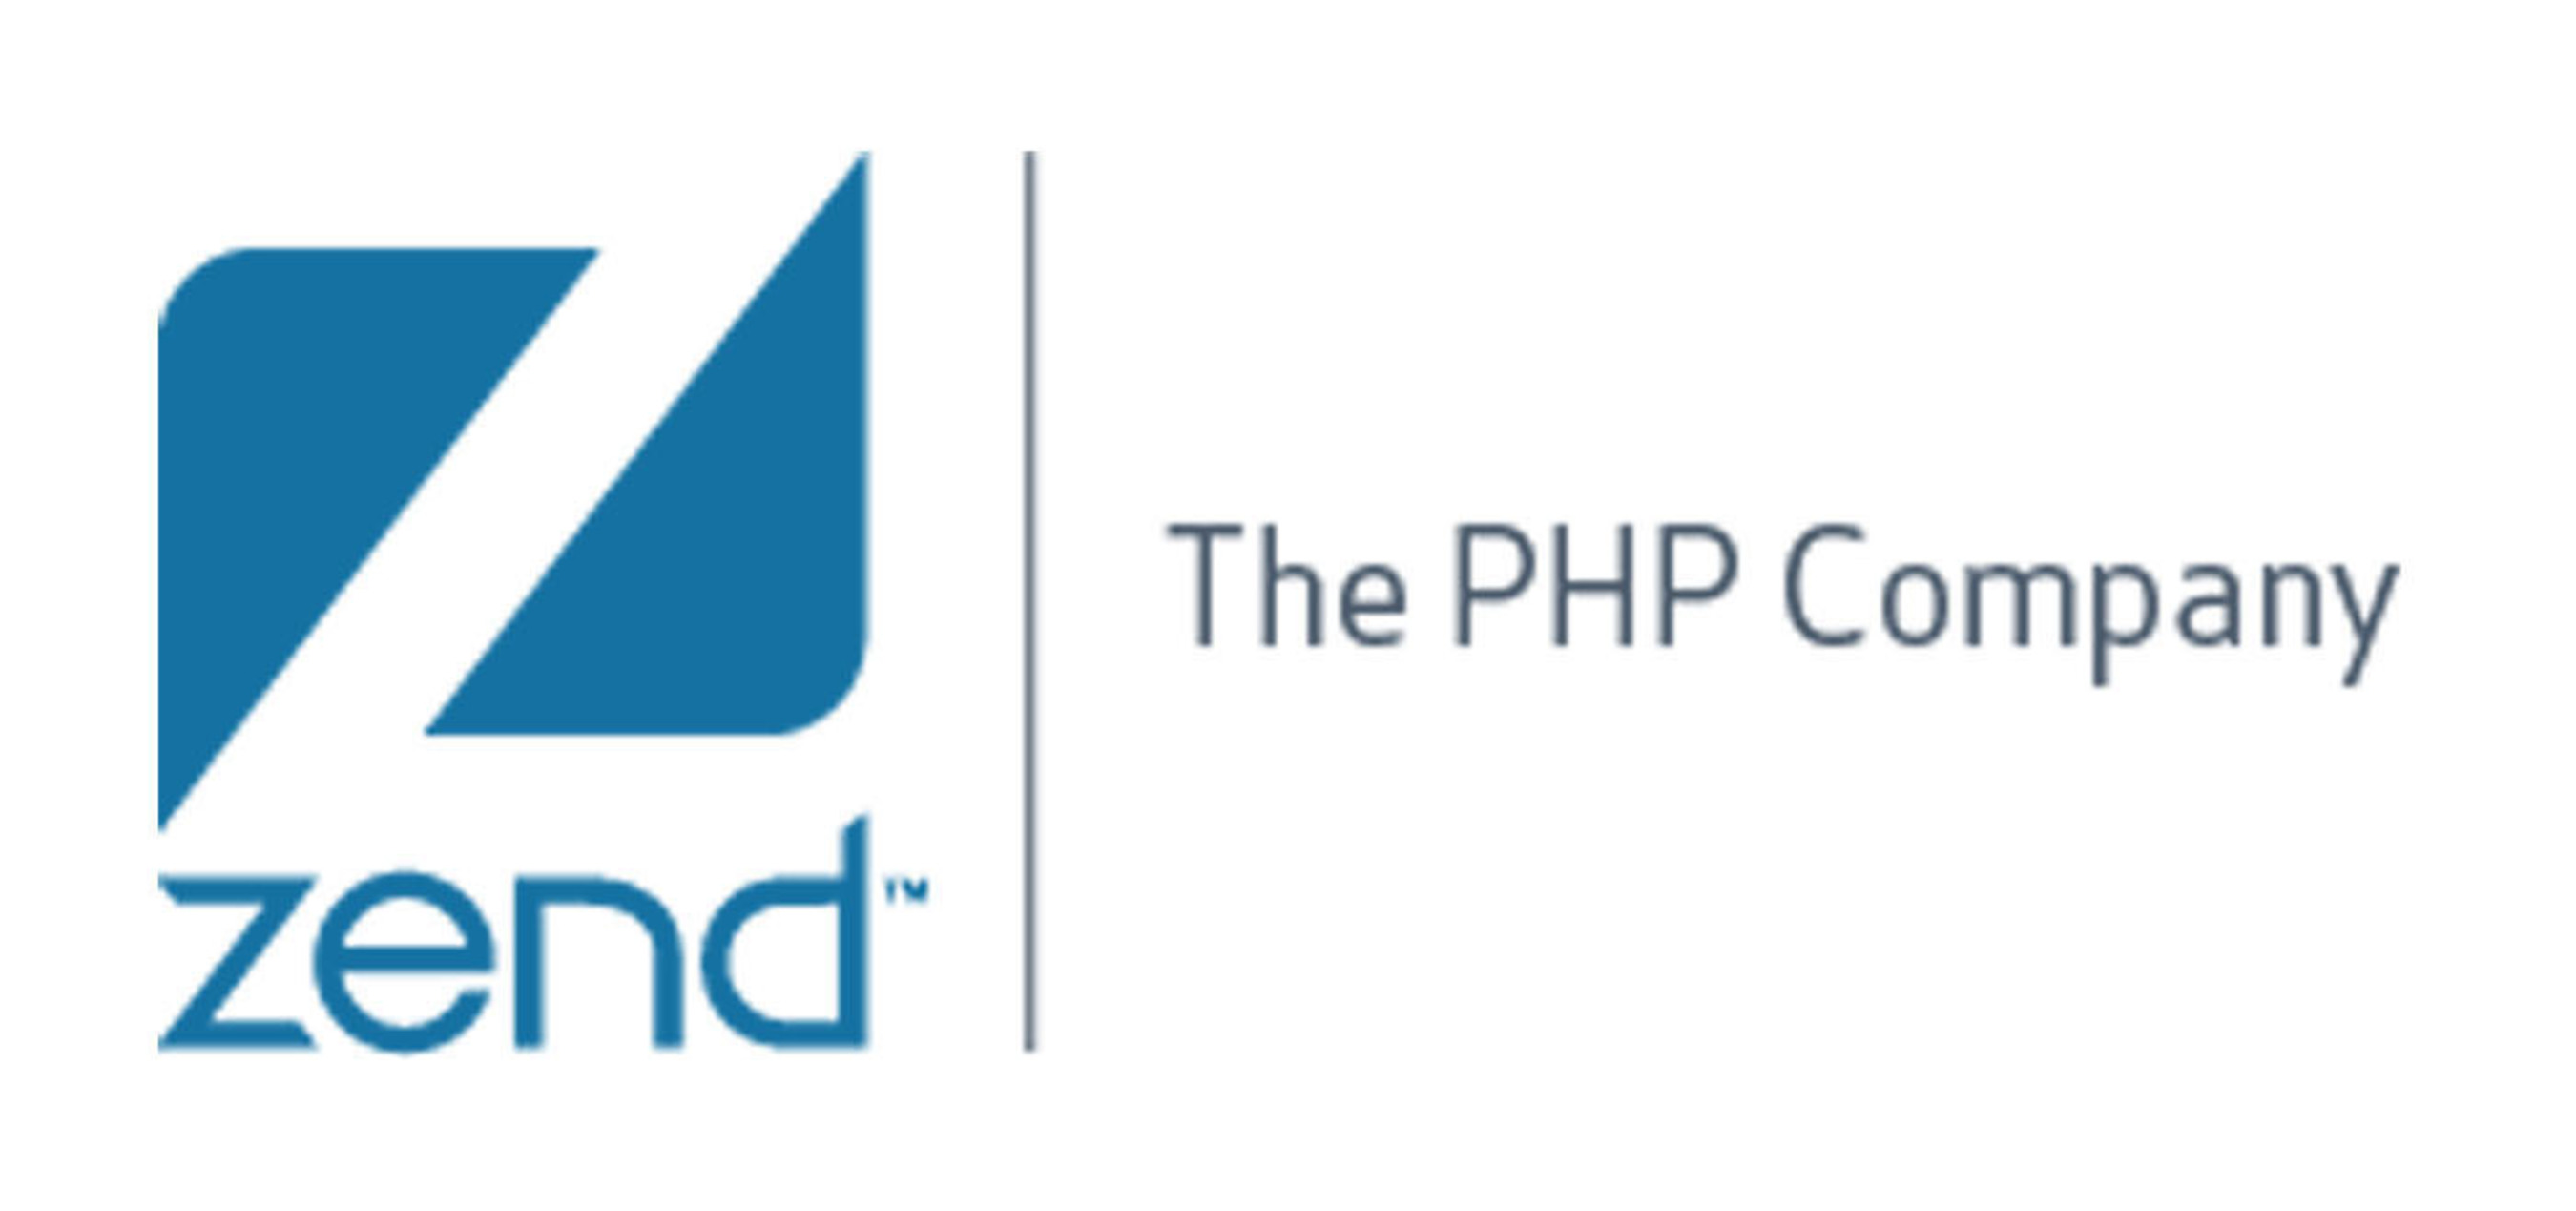 Zend is the leading PHP Web Application Platform.